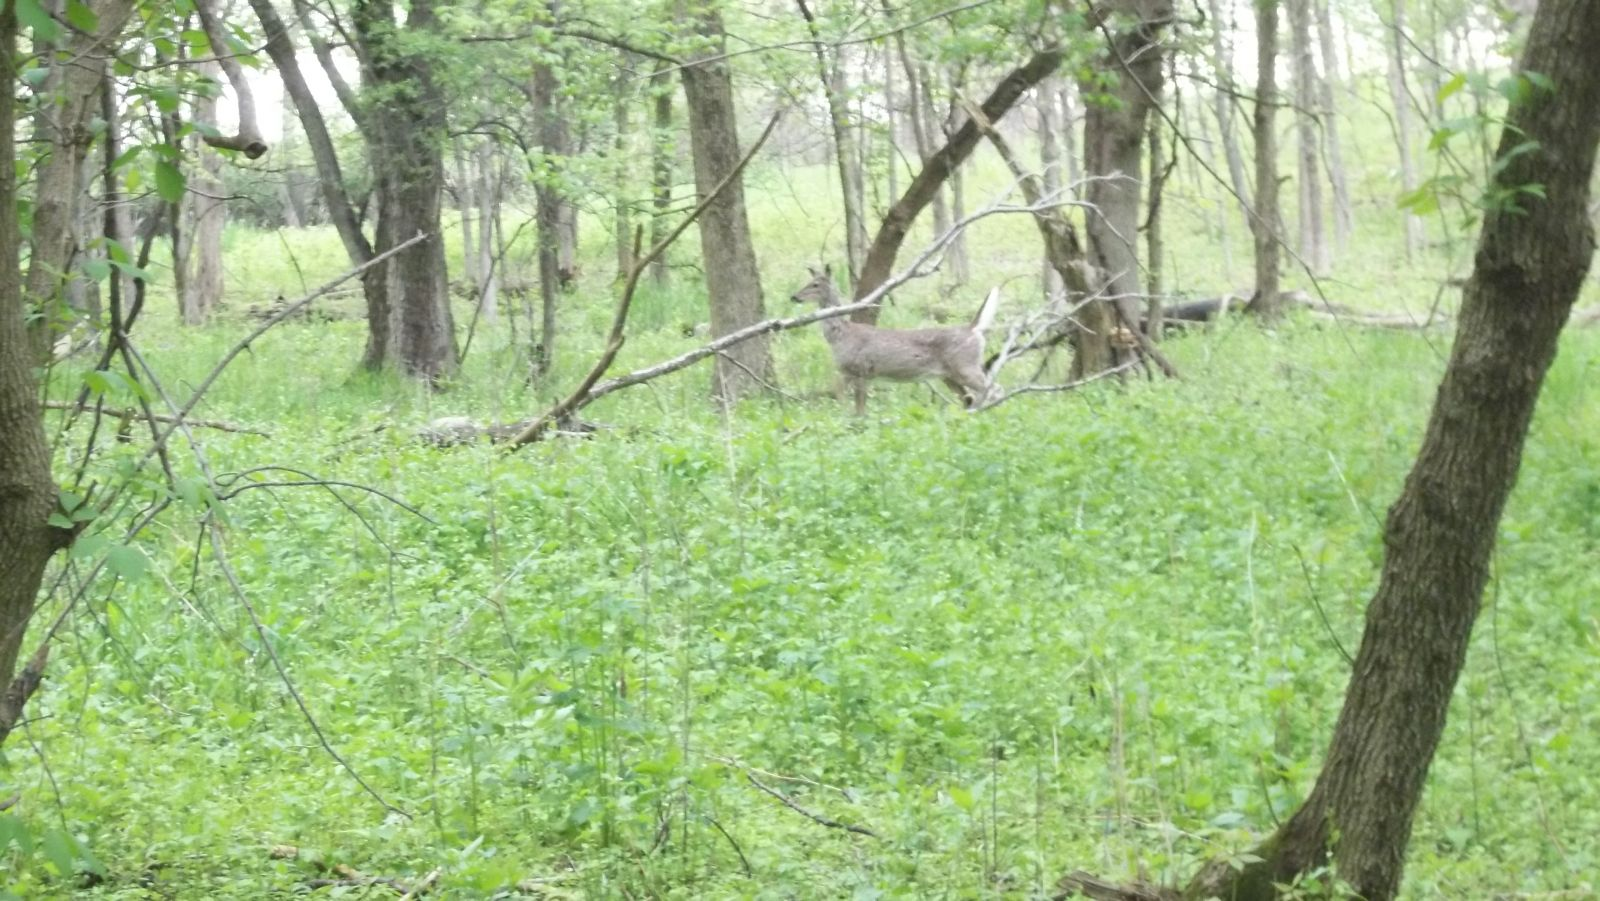 deer chasing coyote